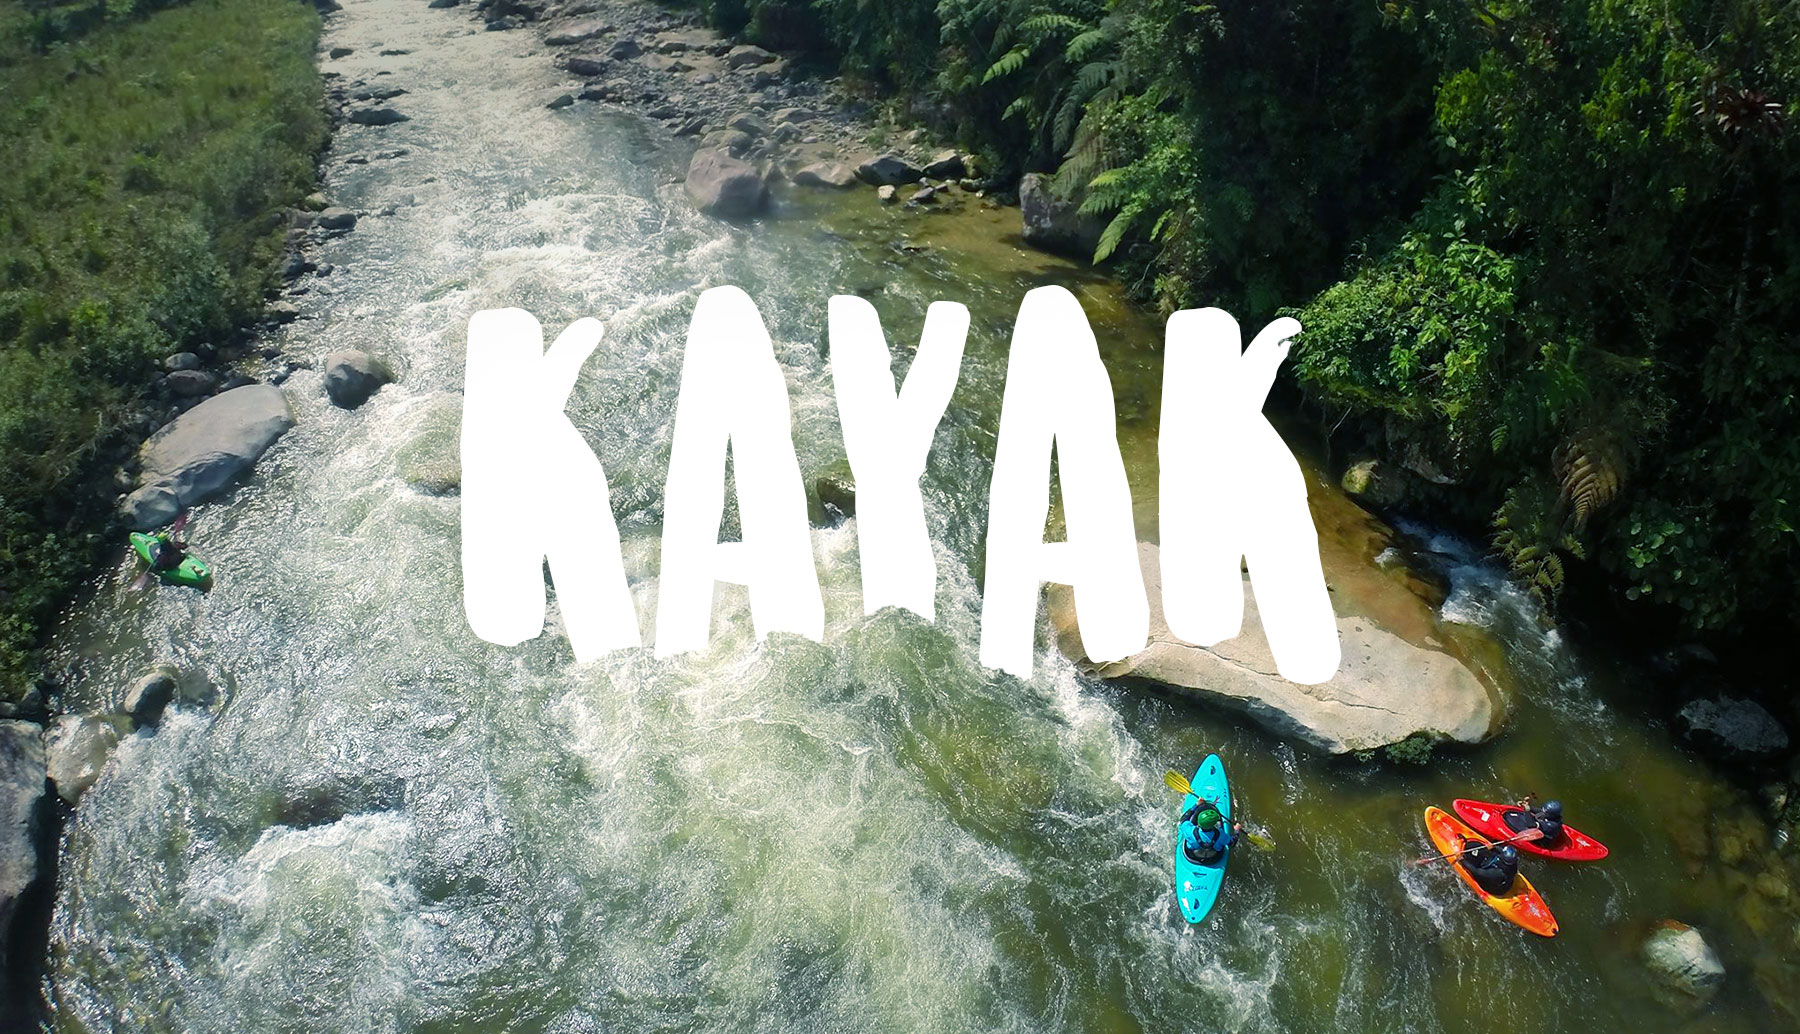 3 Whitewater guides in Kayaks in amazonian river in Ecuador